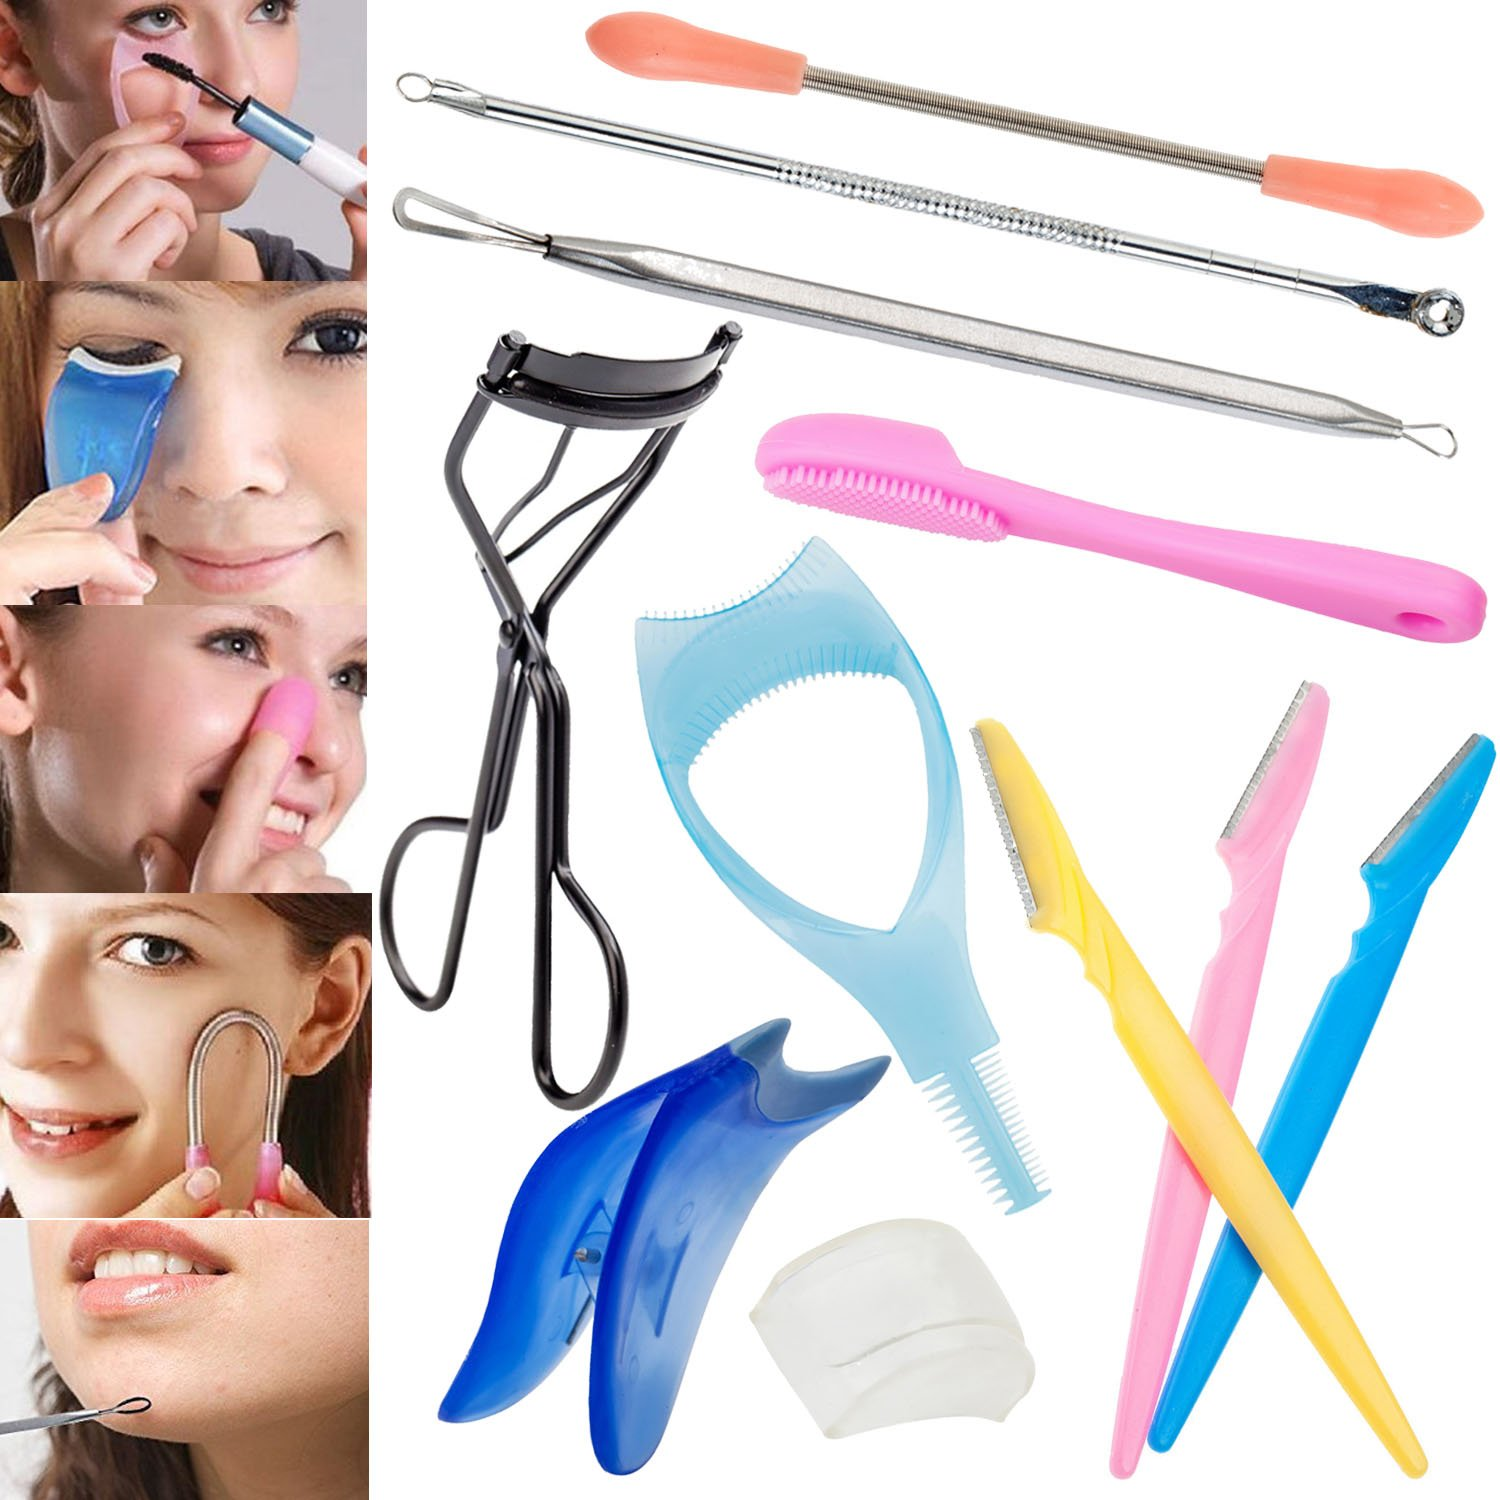 Complete Facial Skin Care Make Up Tools Set Kit With Hair Remover Spring, Blackhead Removers, Mascara And Eyelash Applicators, Eyelash Curler, Eyebrows Razors and Silicone Pore Cleaner By VAGA®